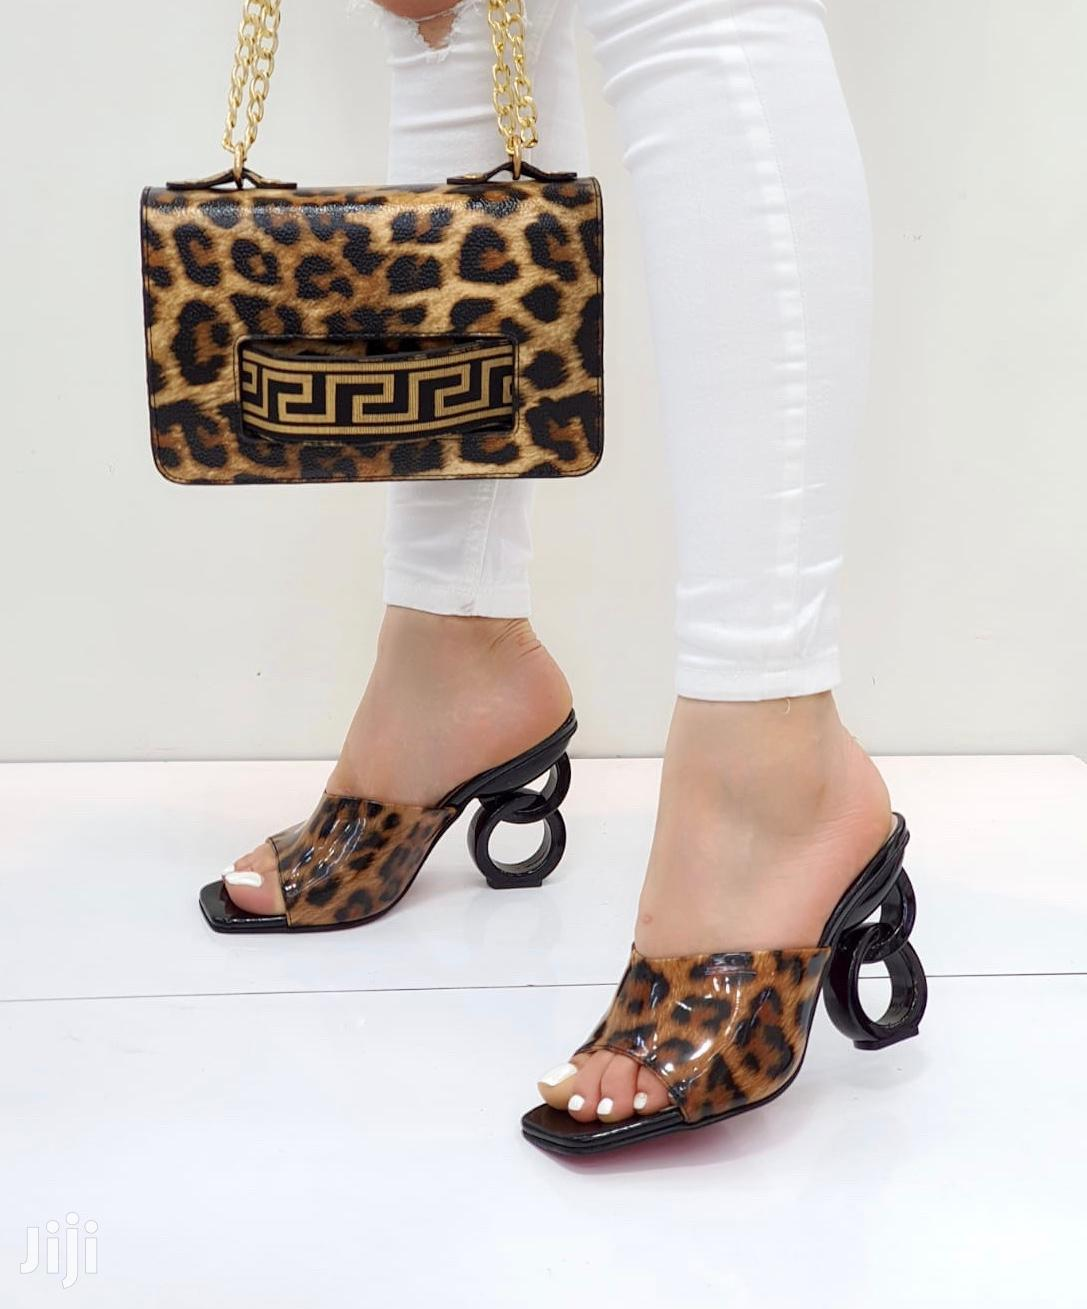 Women's Shoes With A Bag